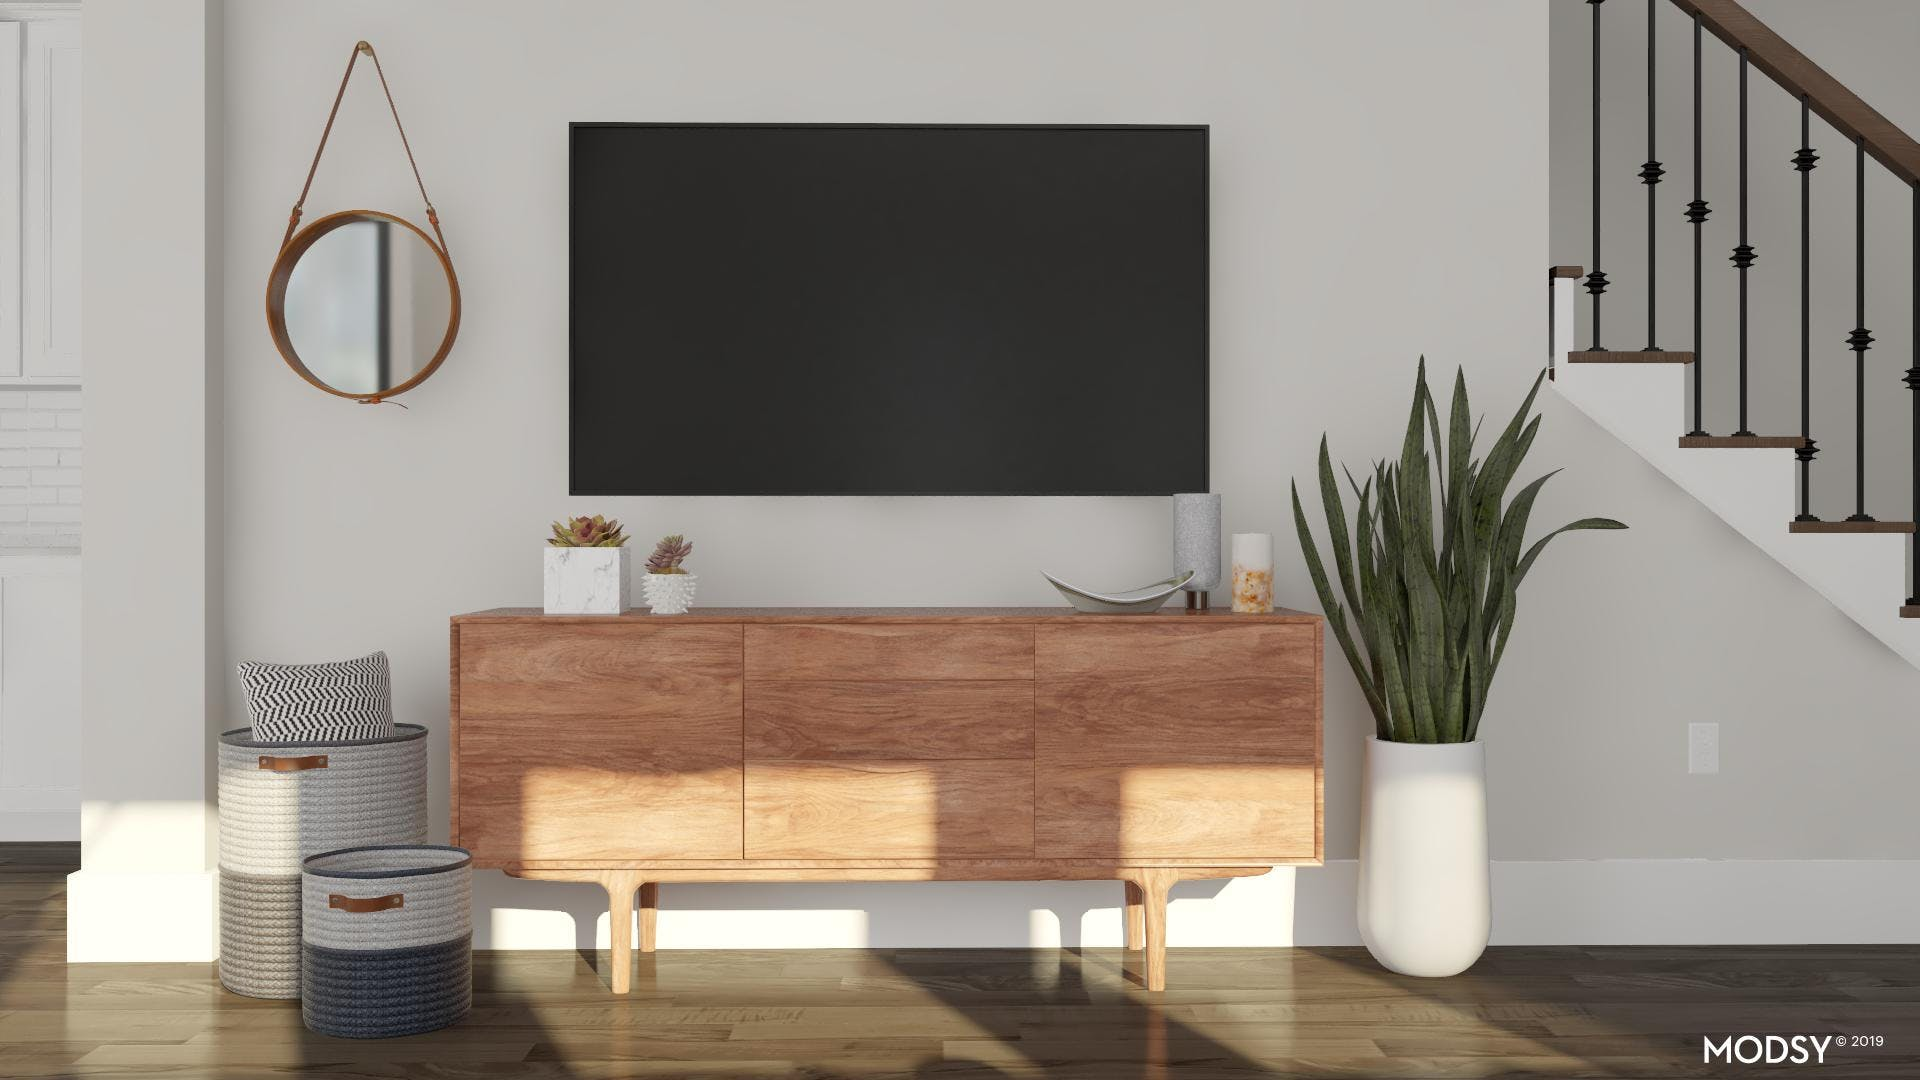 TV Viewing With Balance